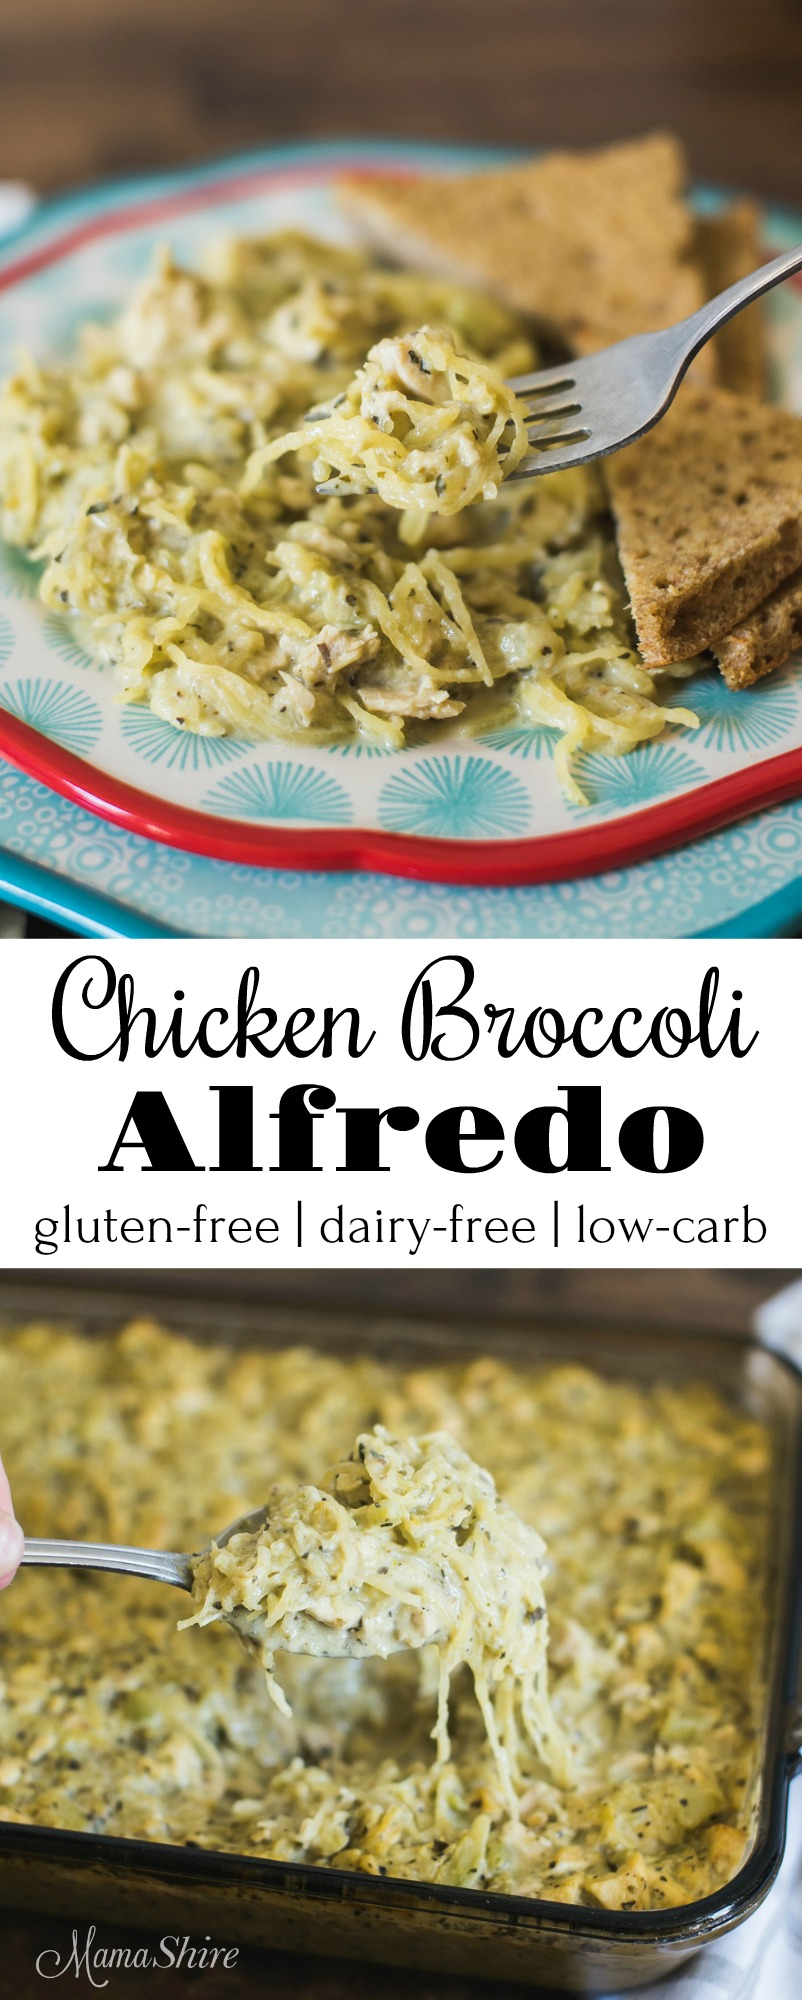 Chicken Broccoli Alfredo Gluten-Free Dairy-Free Low-Carb THM-S